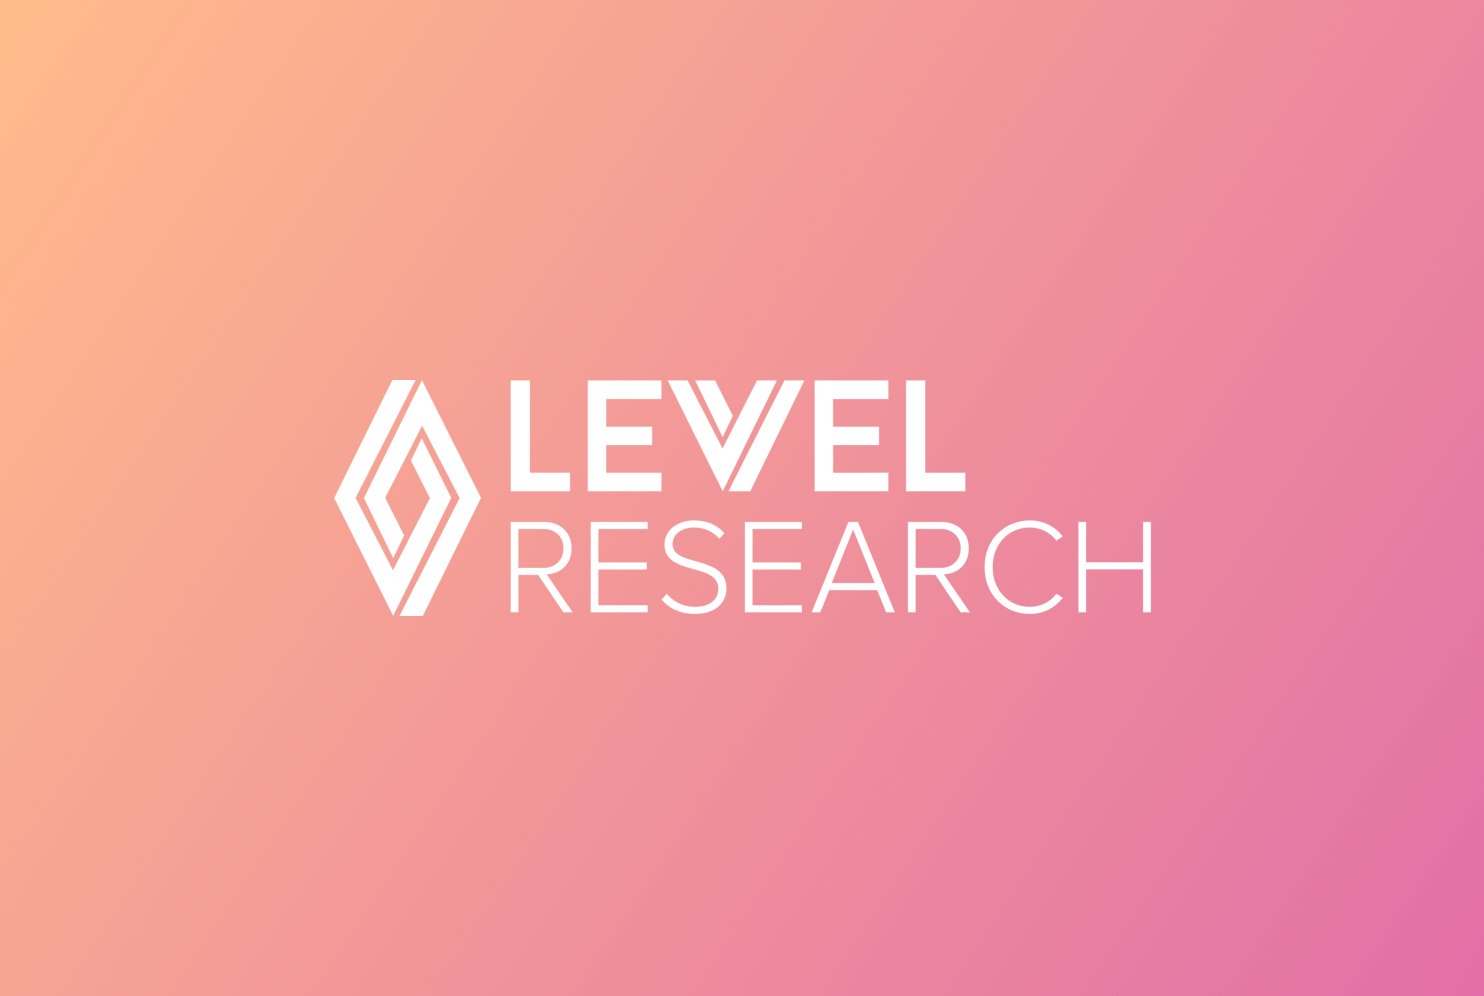 Levvel Research Announces Winners of 2018 Innovation Awards